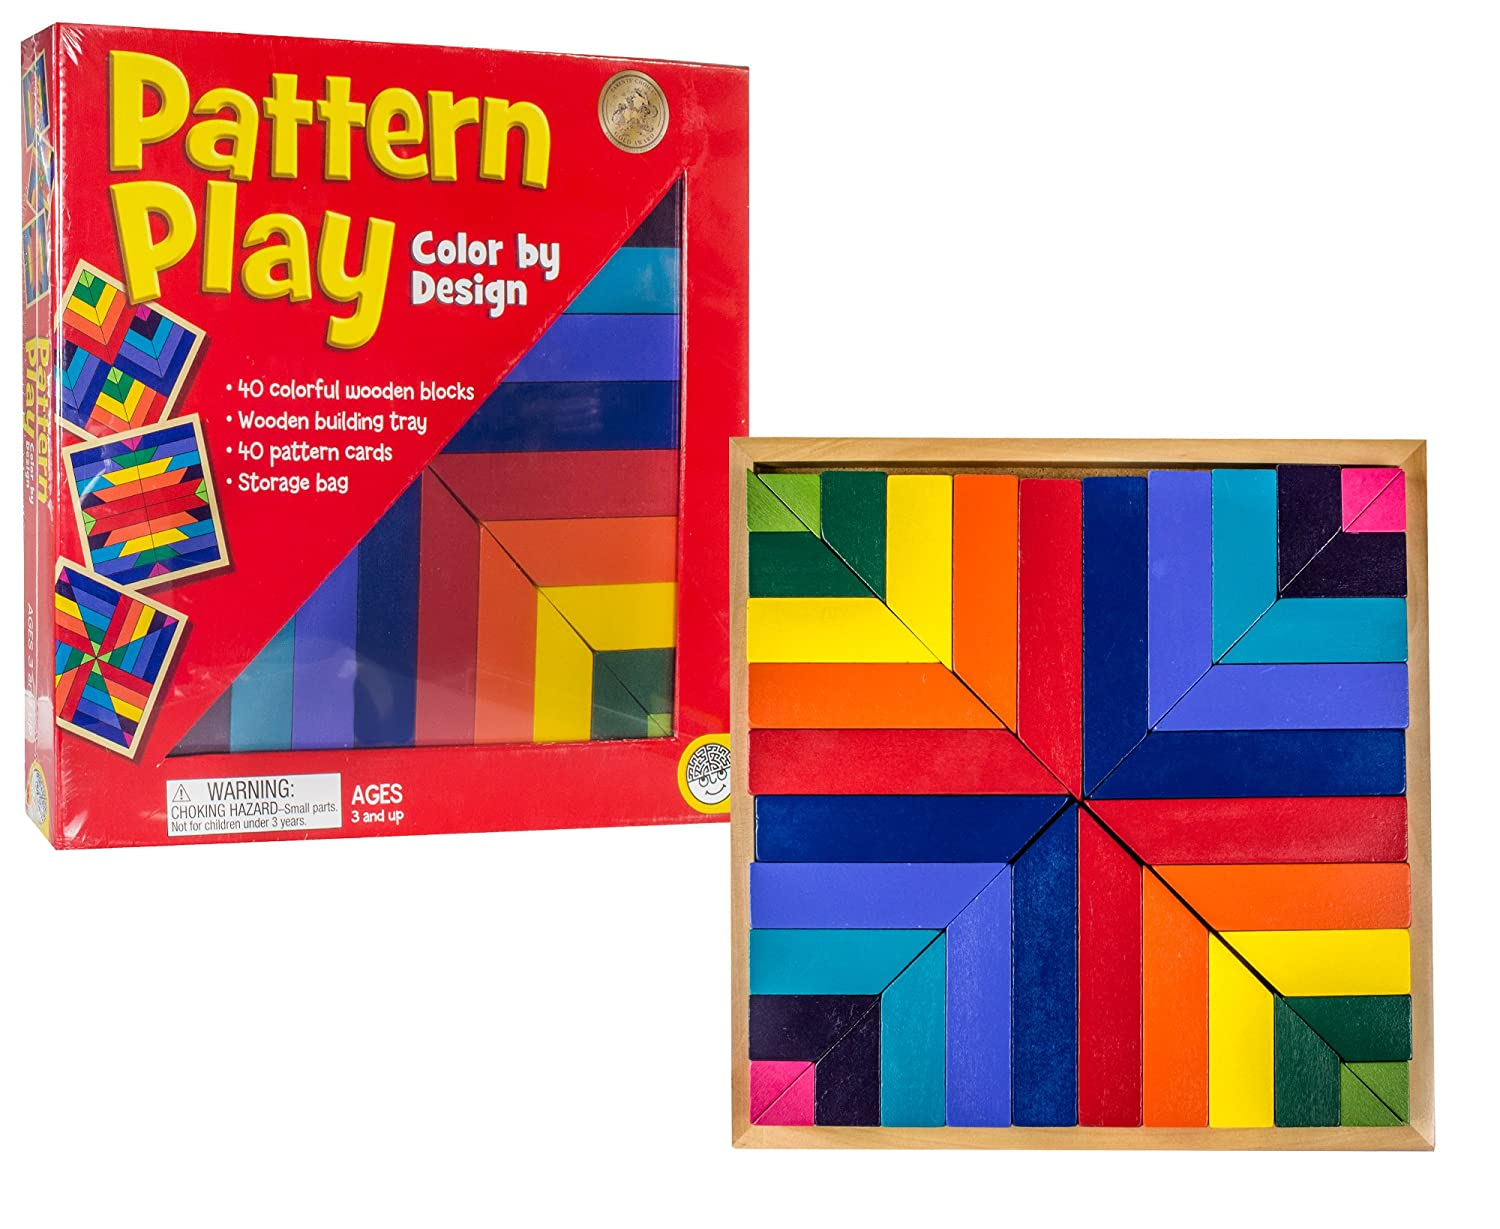 Amazon.com: MindWare Pattern Play 40 colored block replication game ...